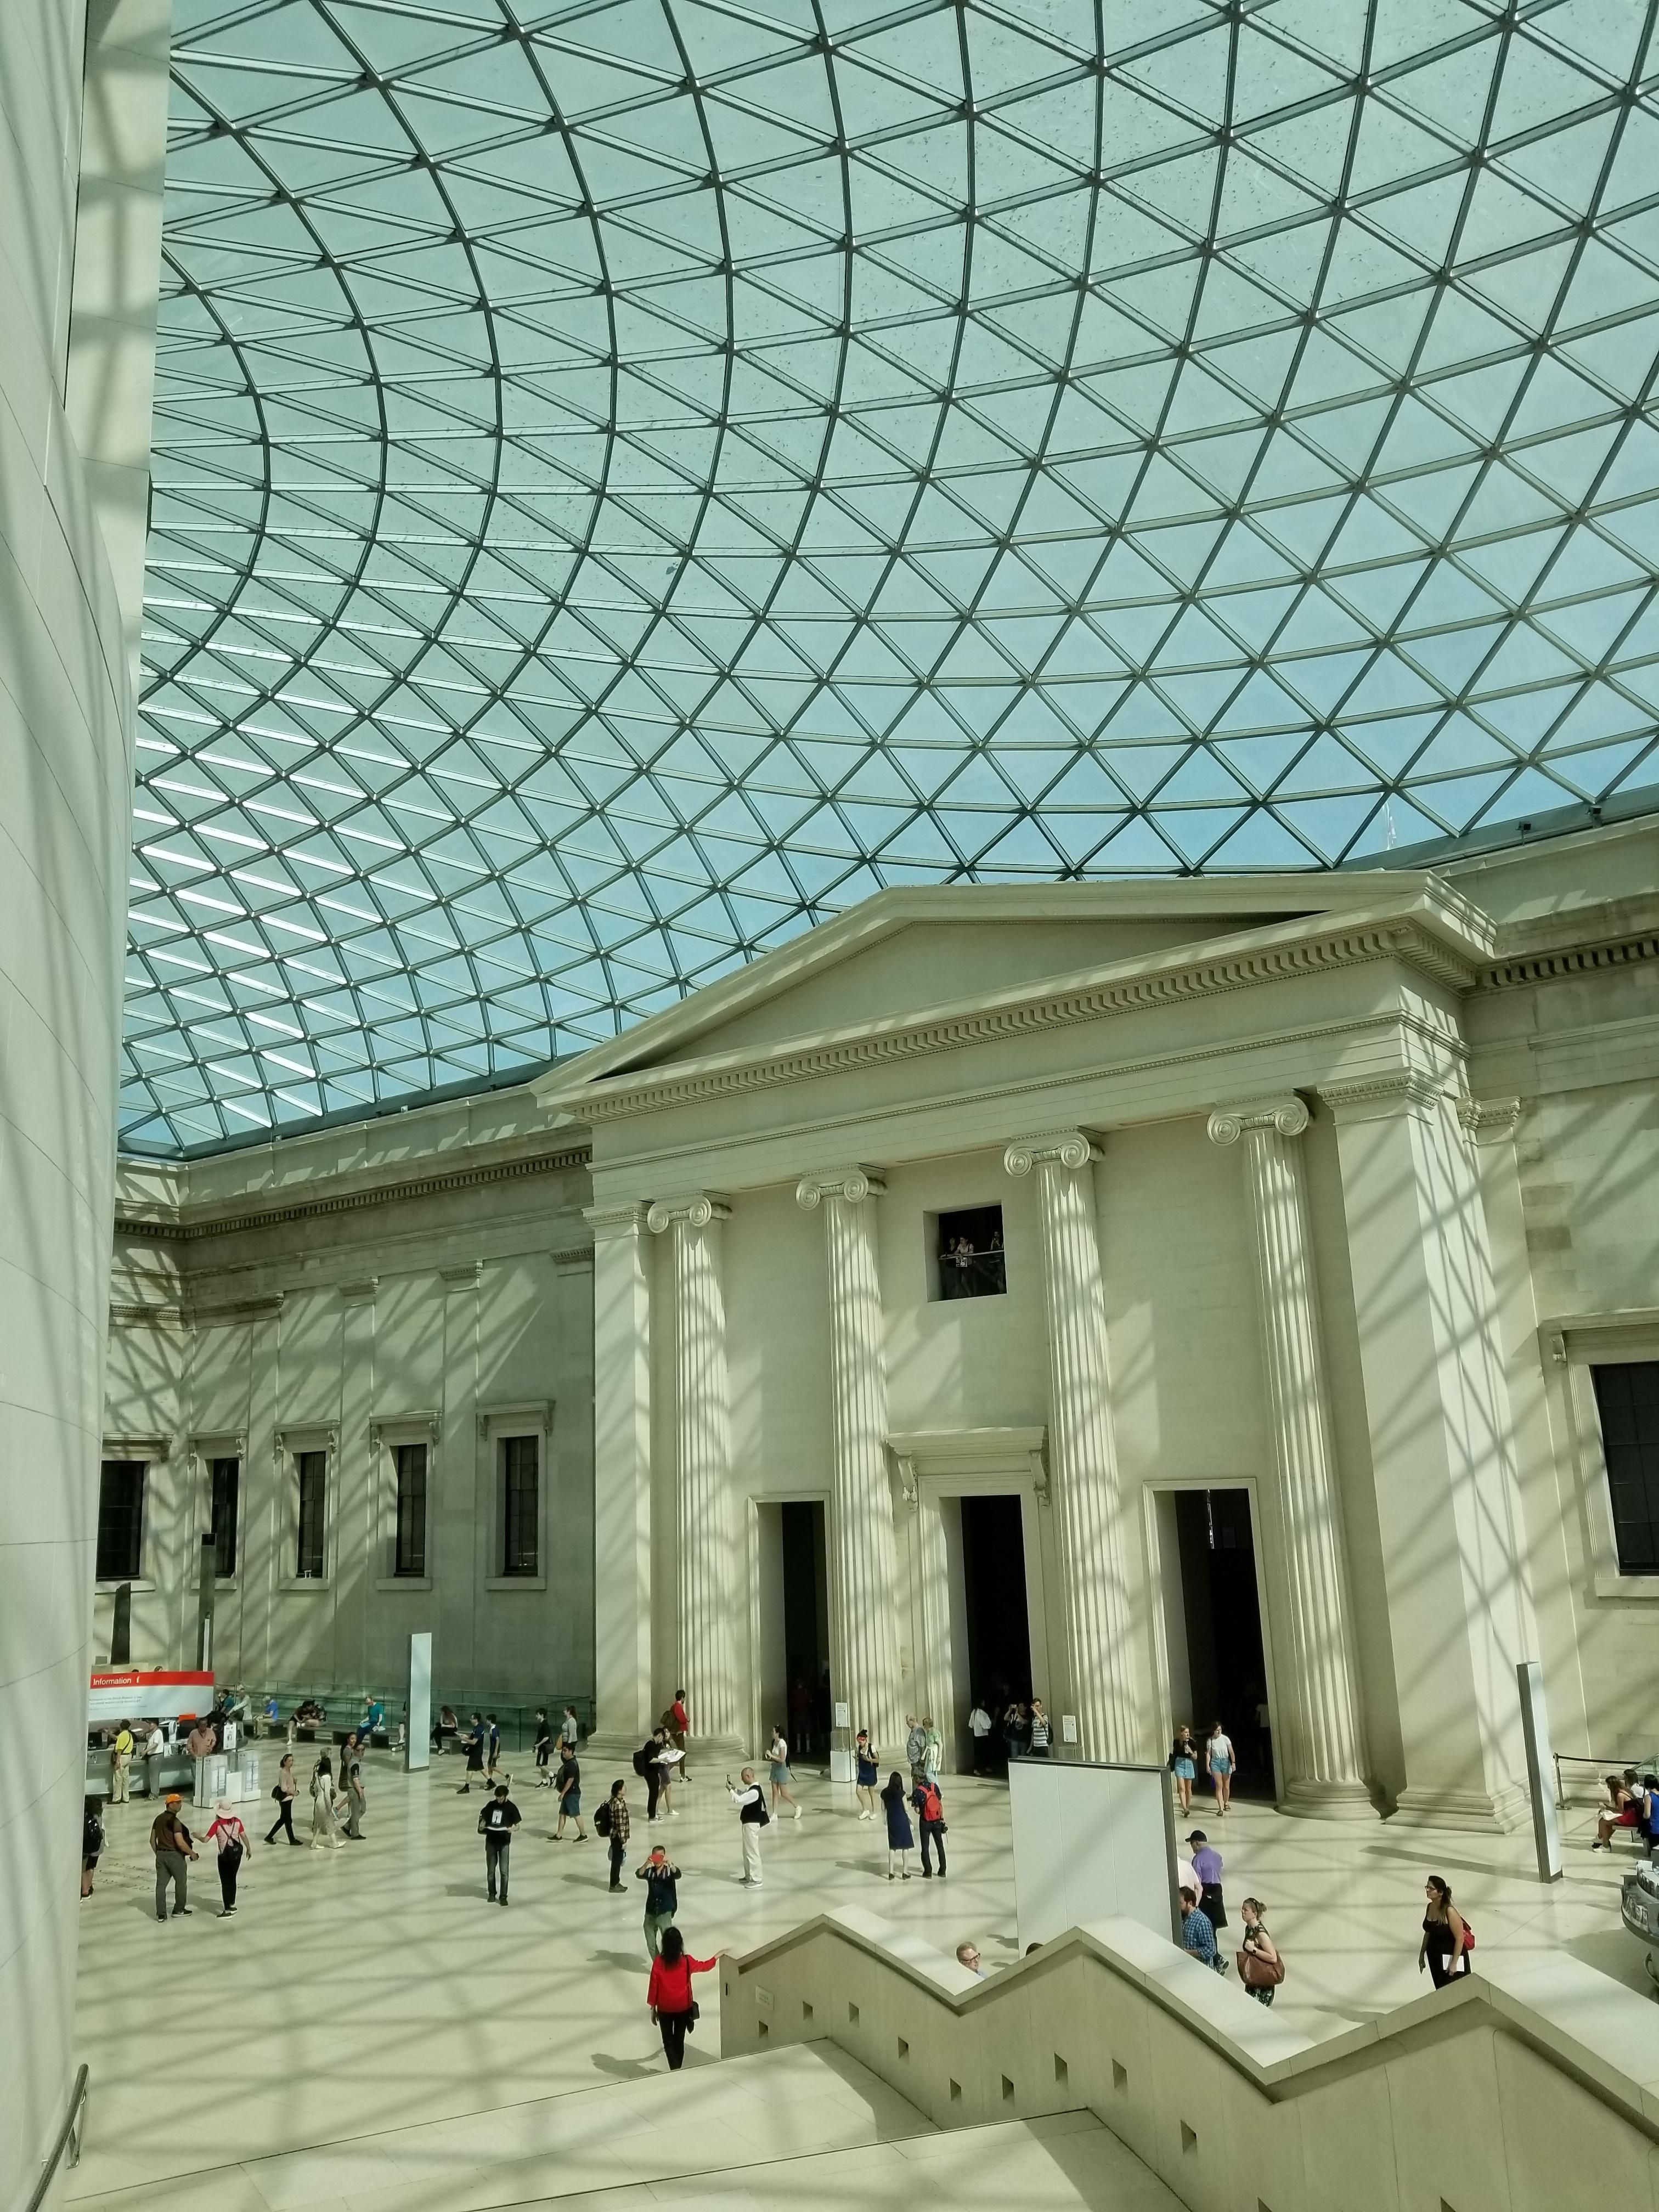 Inside Of The British Museum It S Oddly Satisfying The Way The Ceiling Creates All These Lines 4032x3024 Oc British Museum Architecture London England